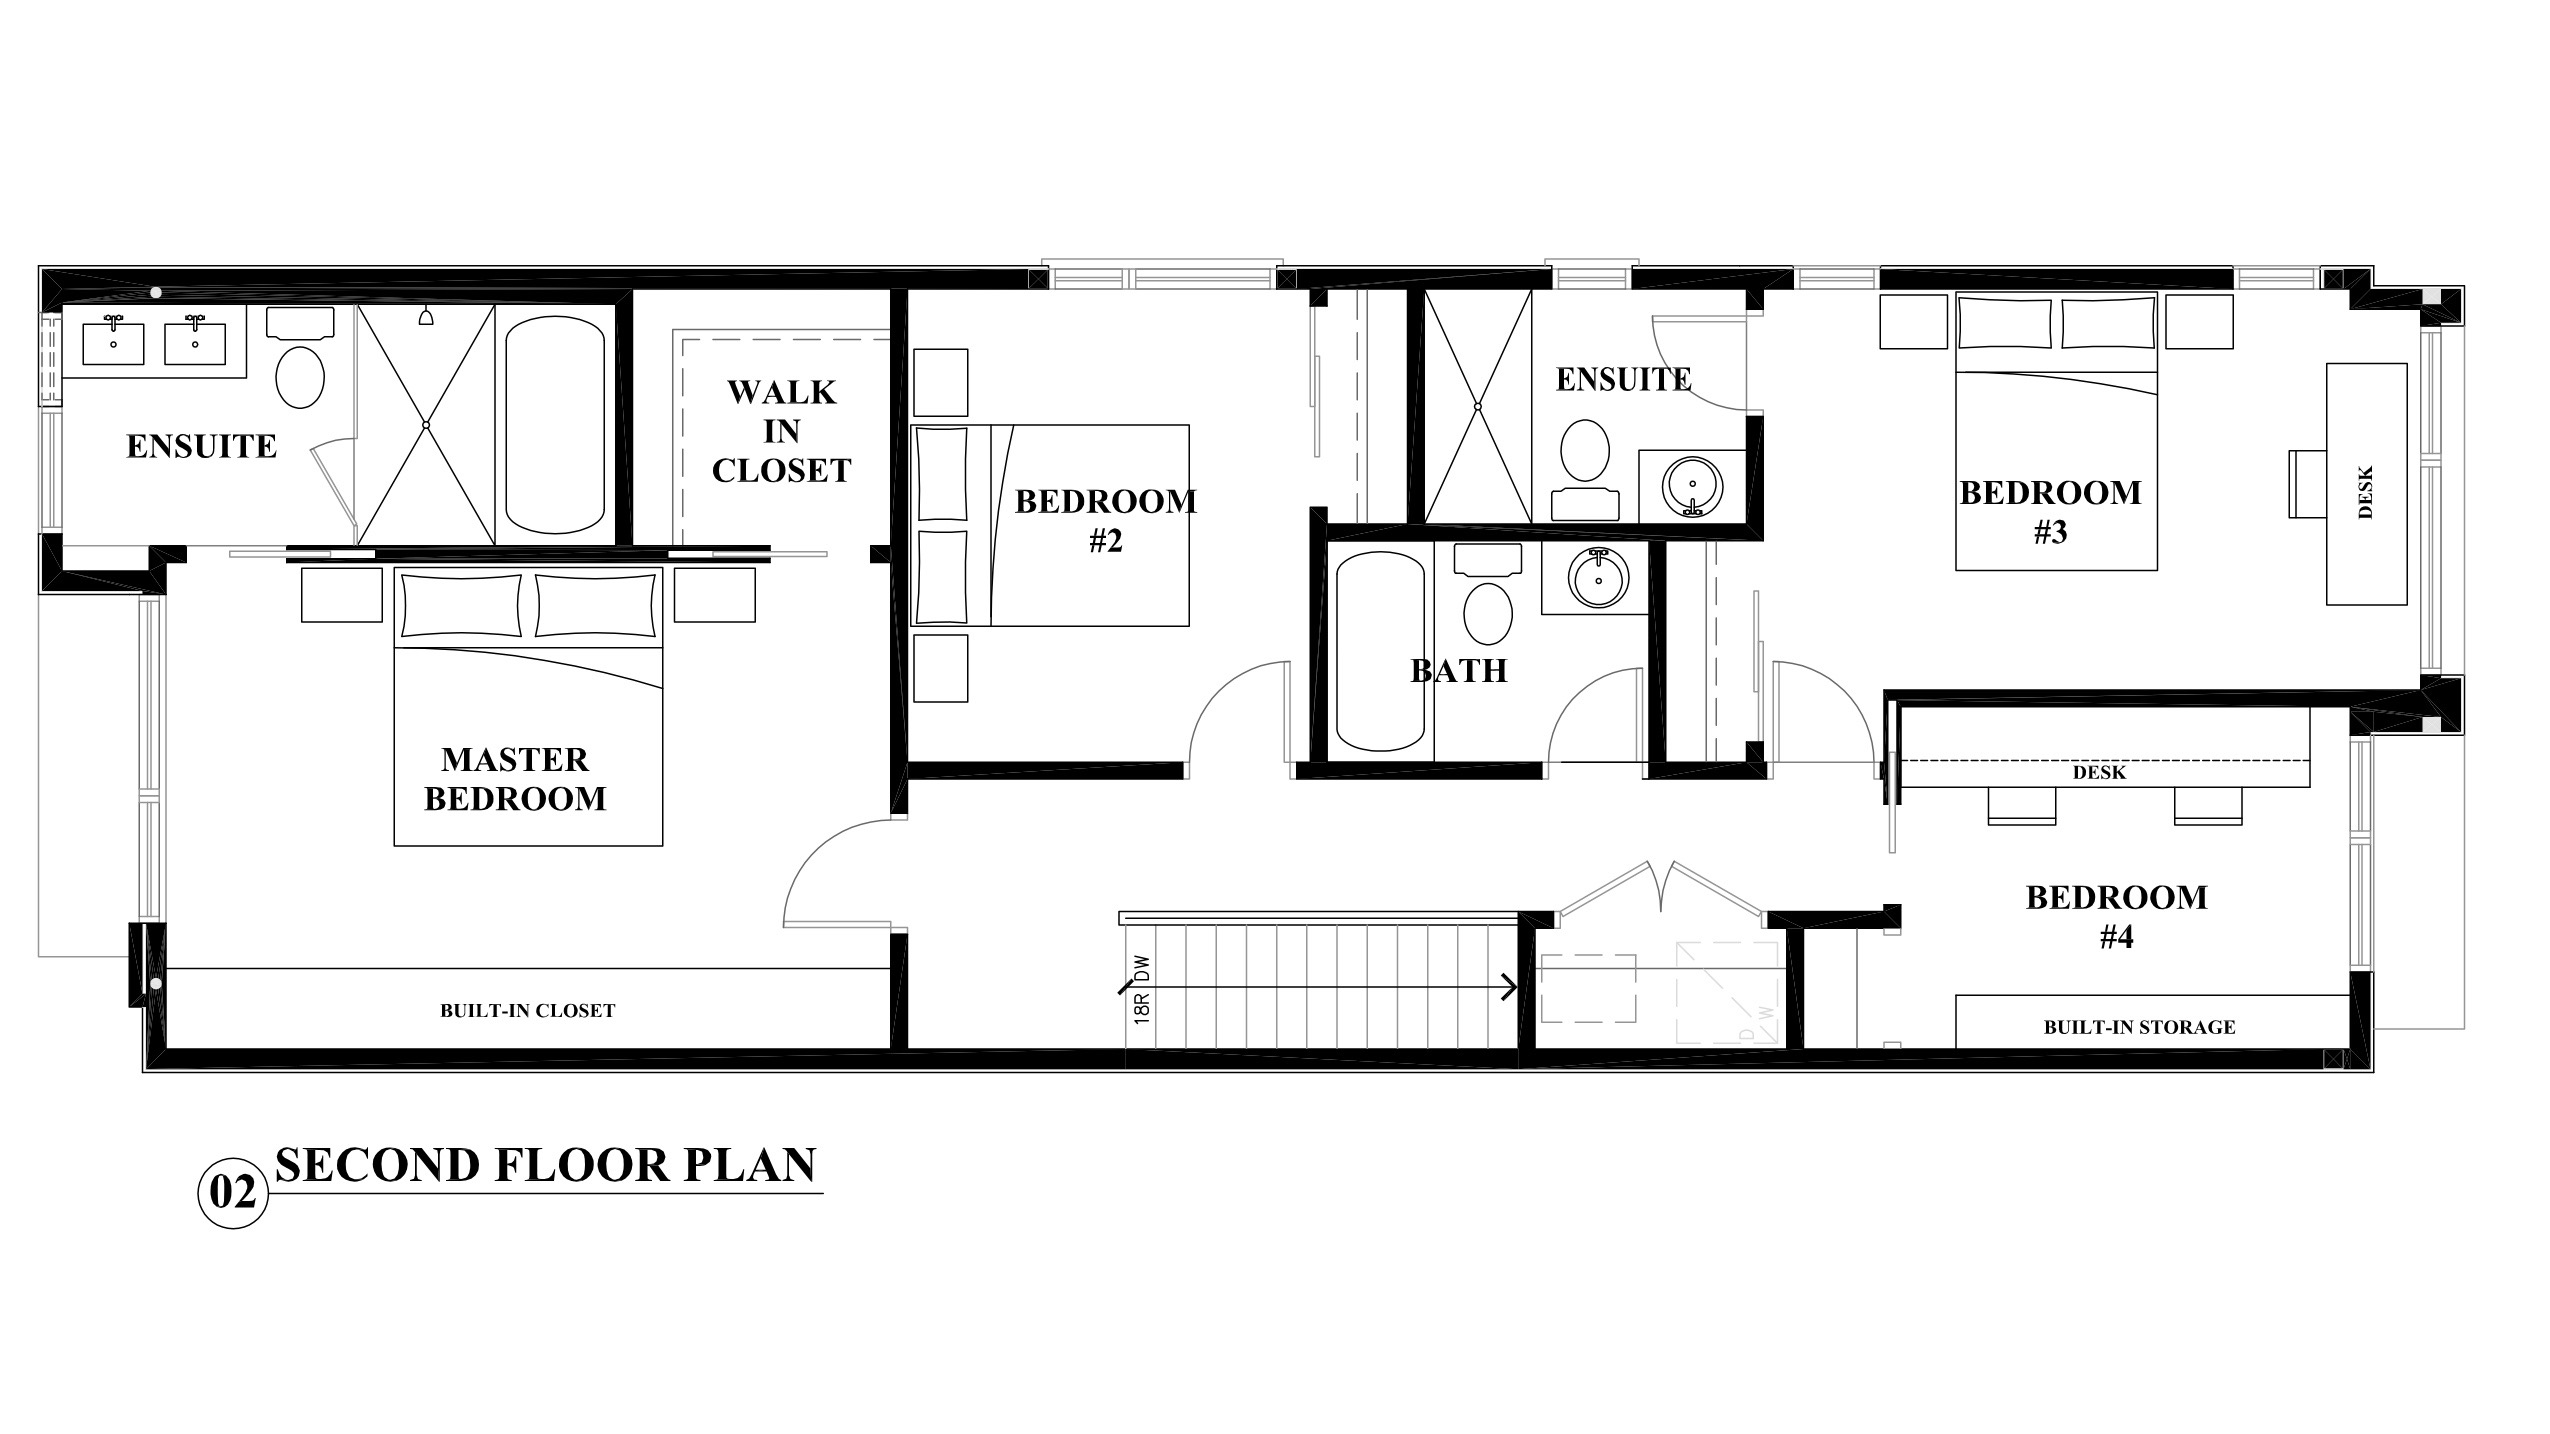 Interior Floor Design Second Floor Plan An Interior Design Perspective On